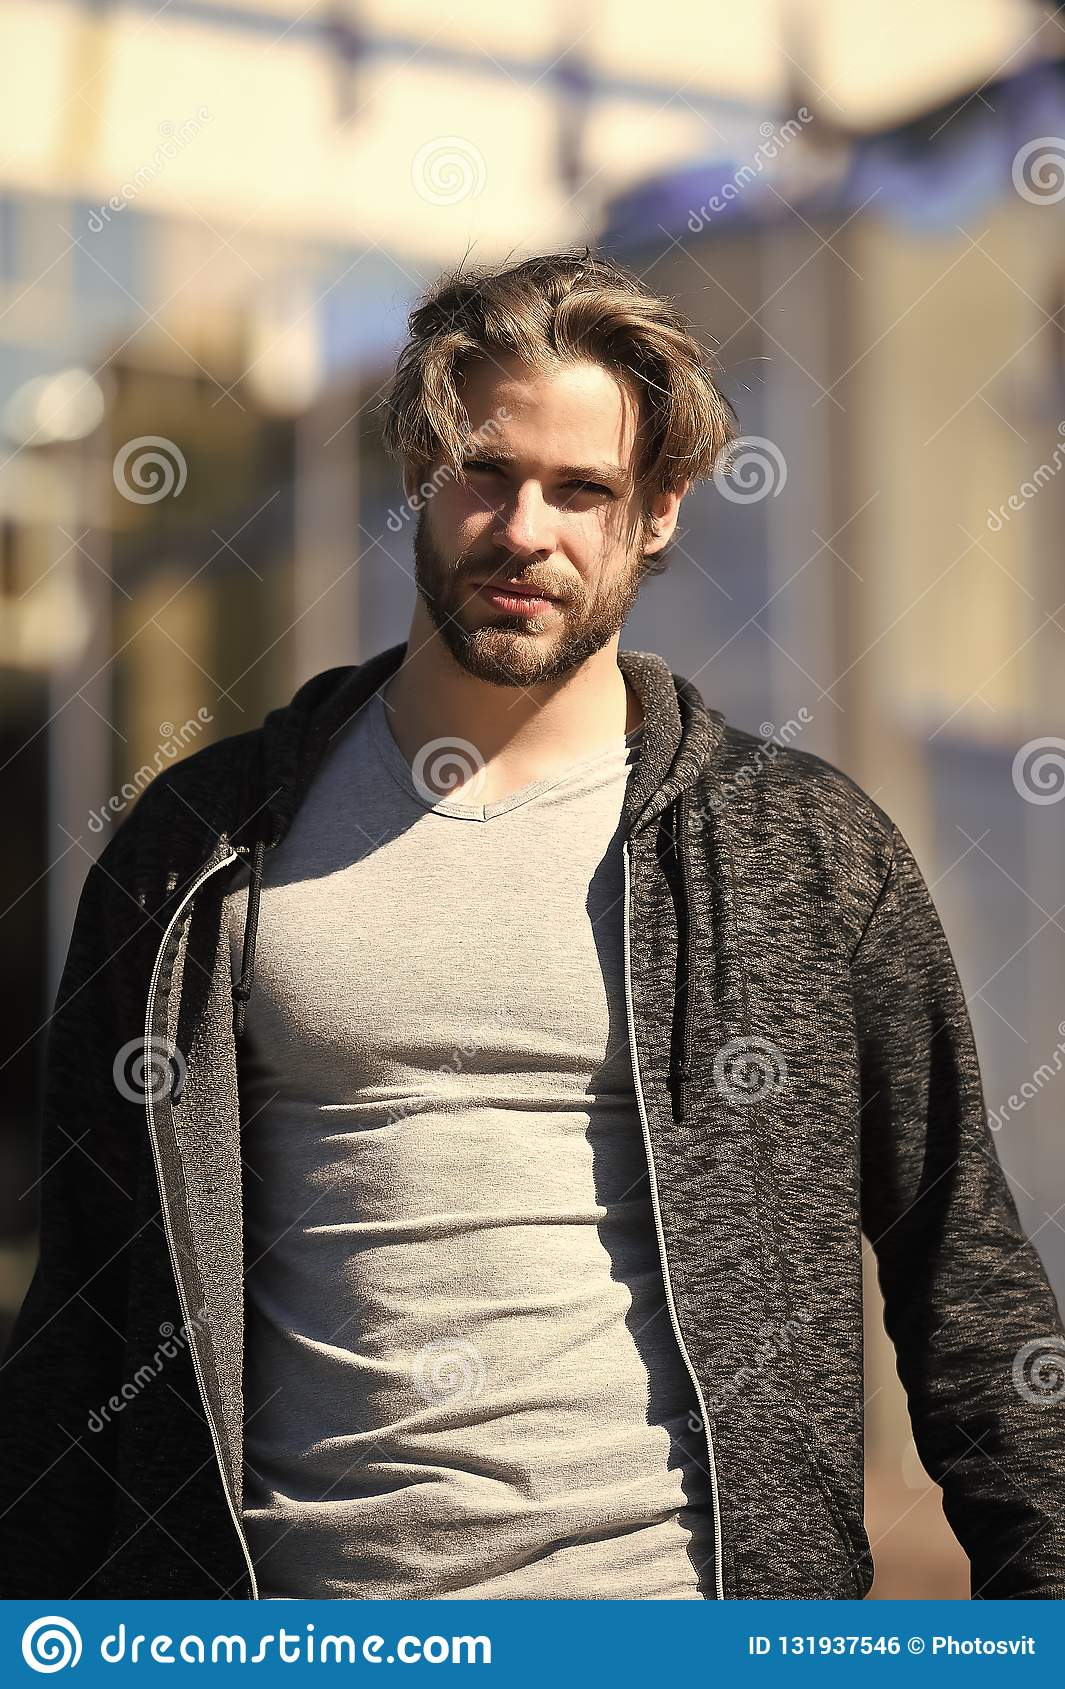 Hipster With Beard And Haircut Walking On Street Stock Photo